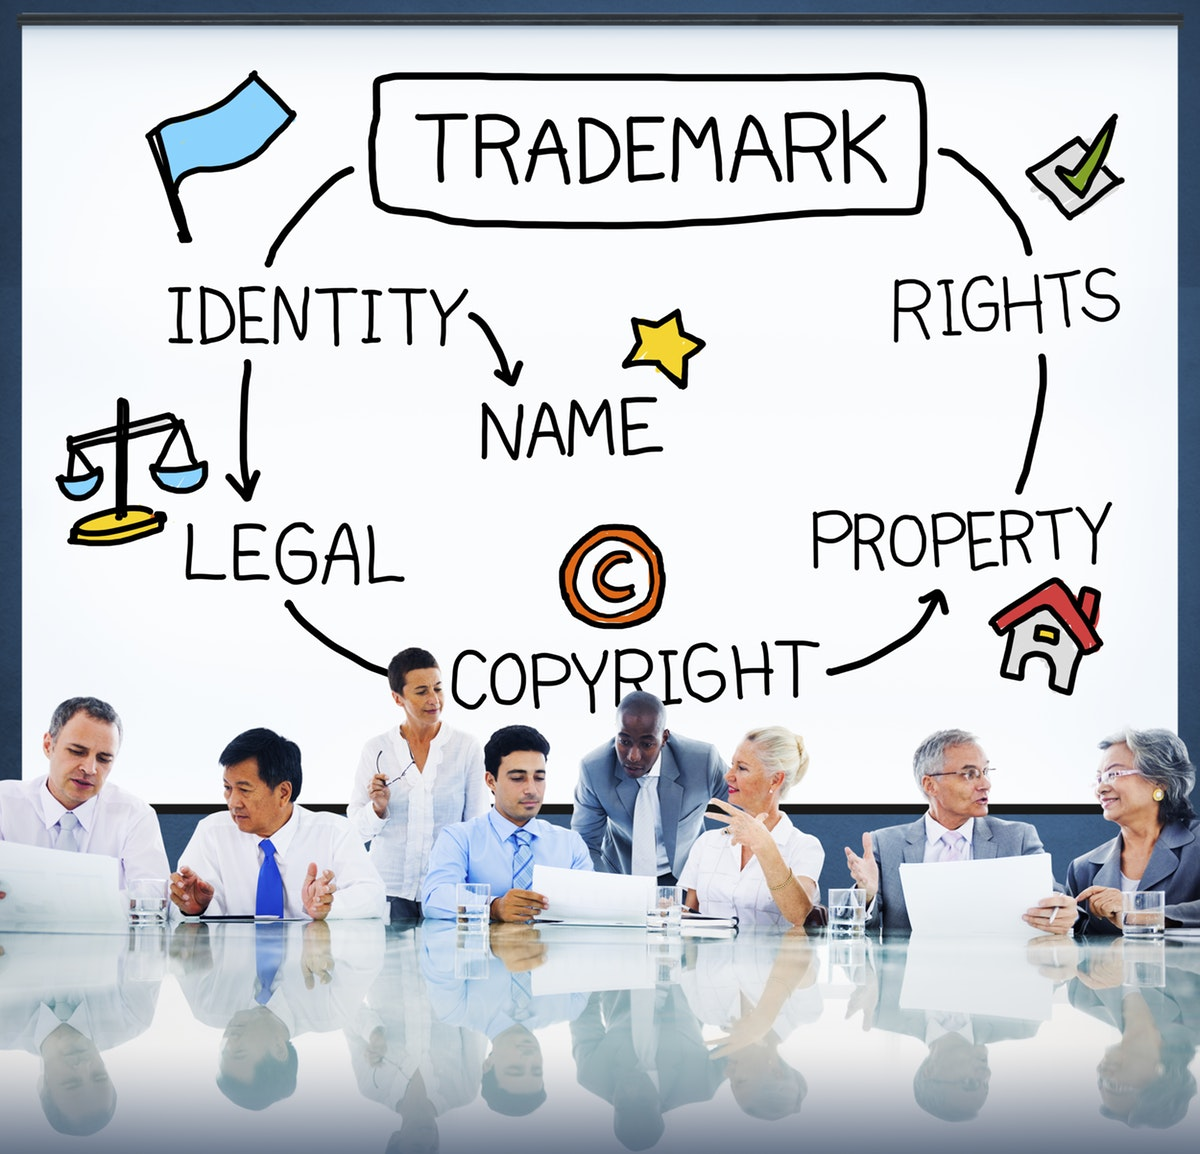 Trademark Registration at a Glance| Things to Know| Tips for Approval